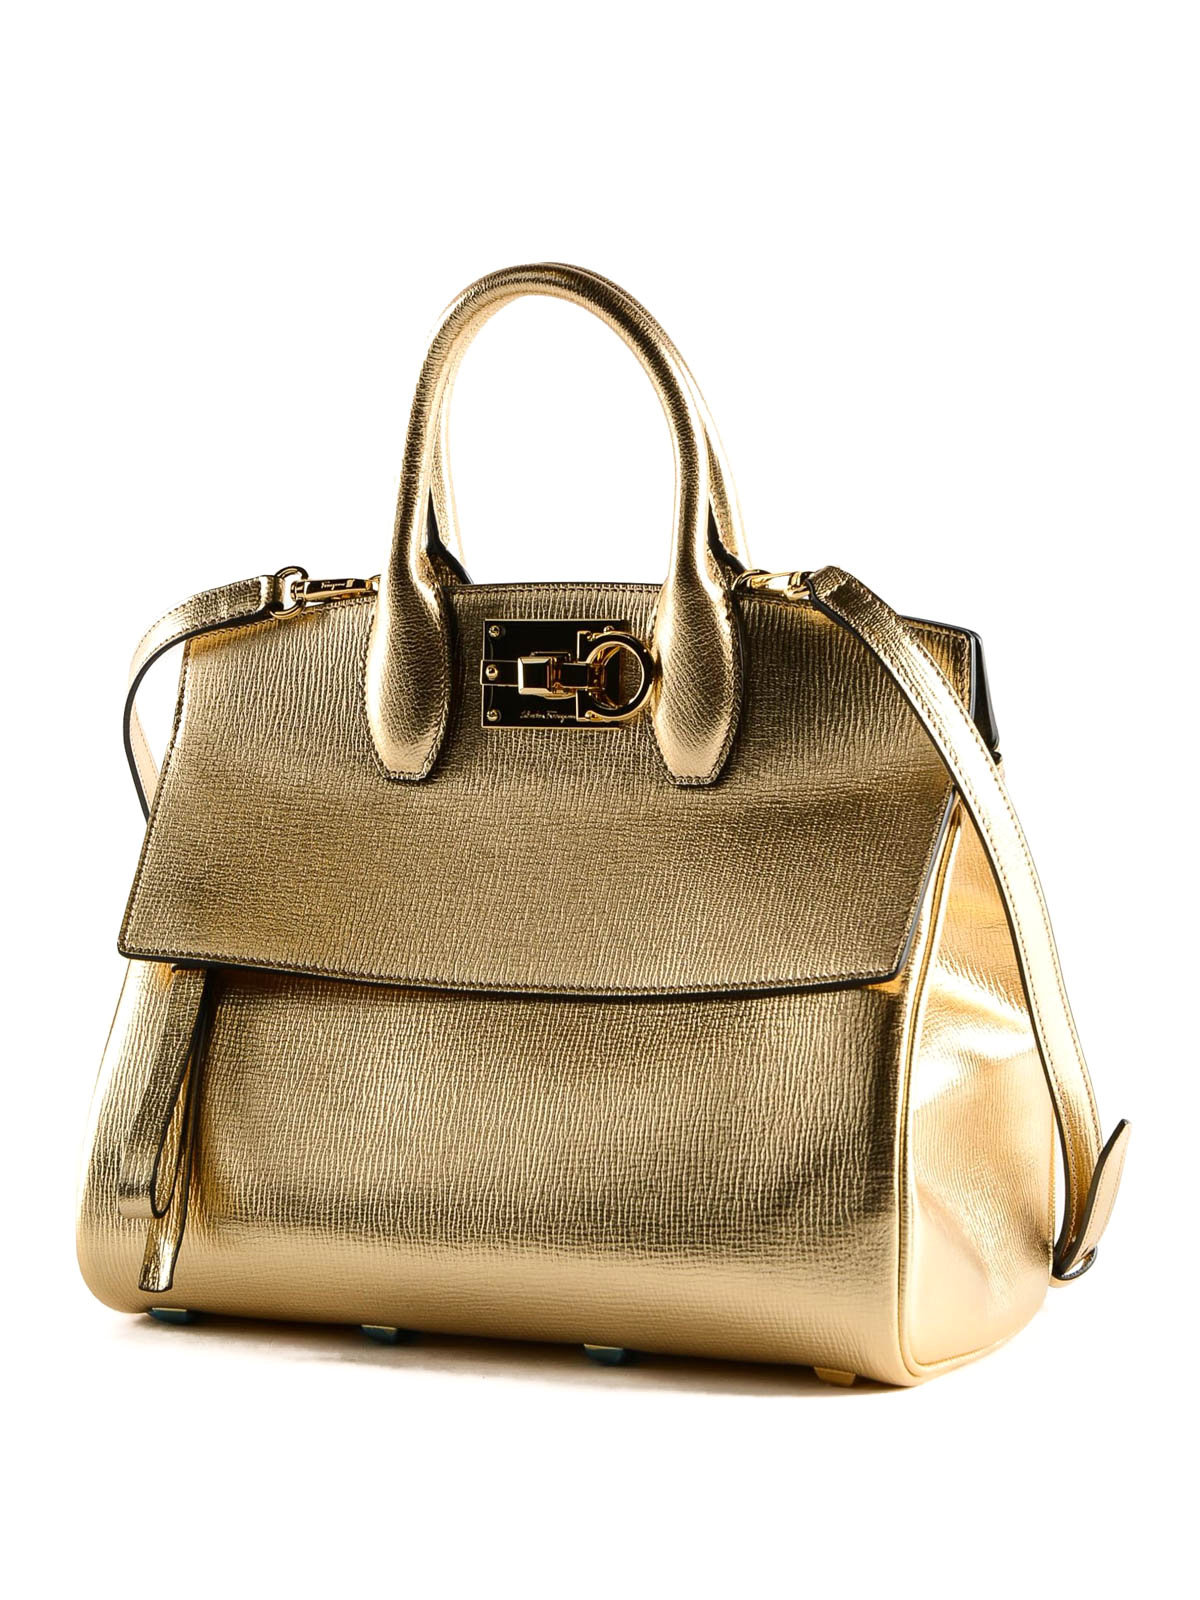 wholesale dealer 65c07 bf60f salvatore-ferragamo-online-totes-bags-studio-laminated-leather-tote-00000148451f00s002.jpg